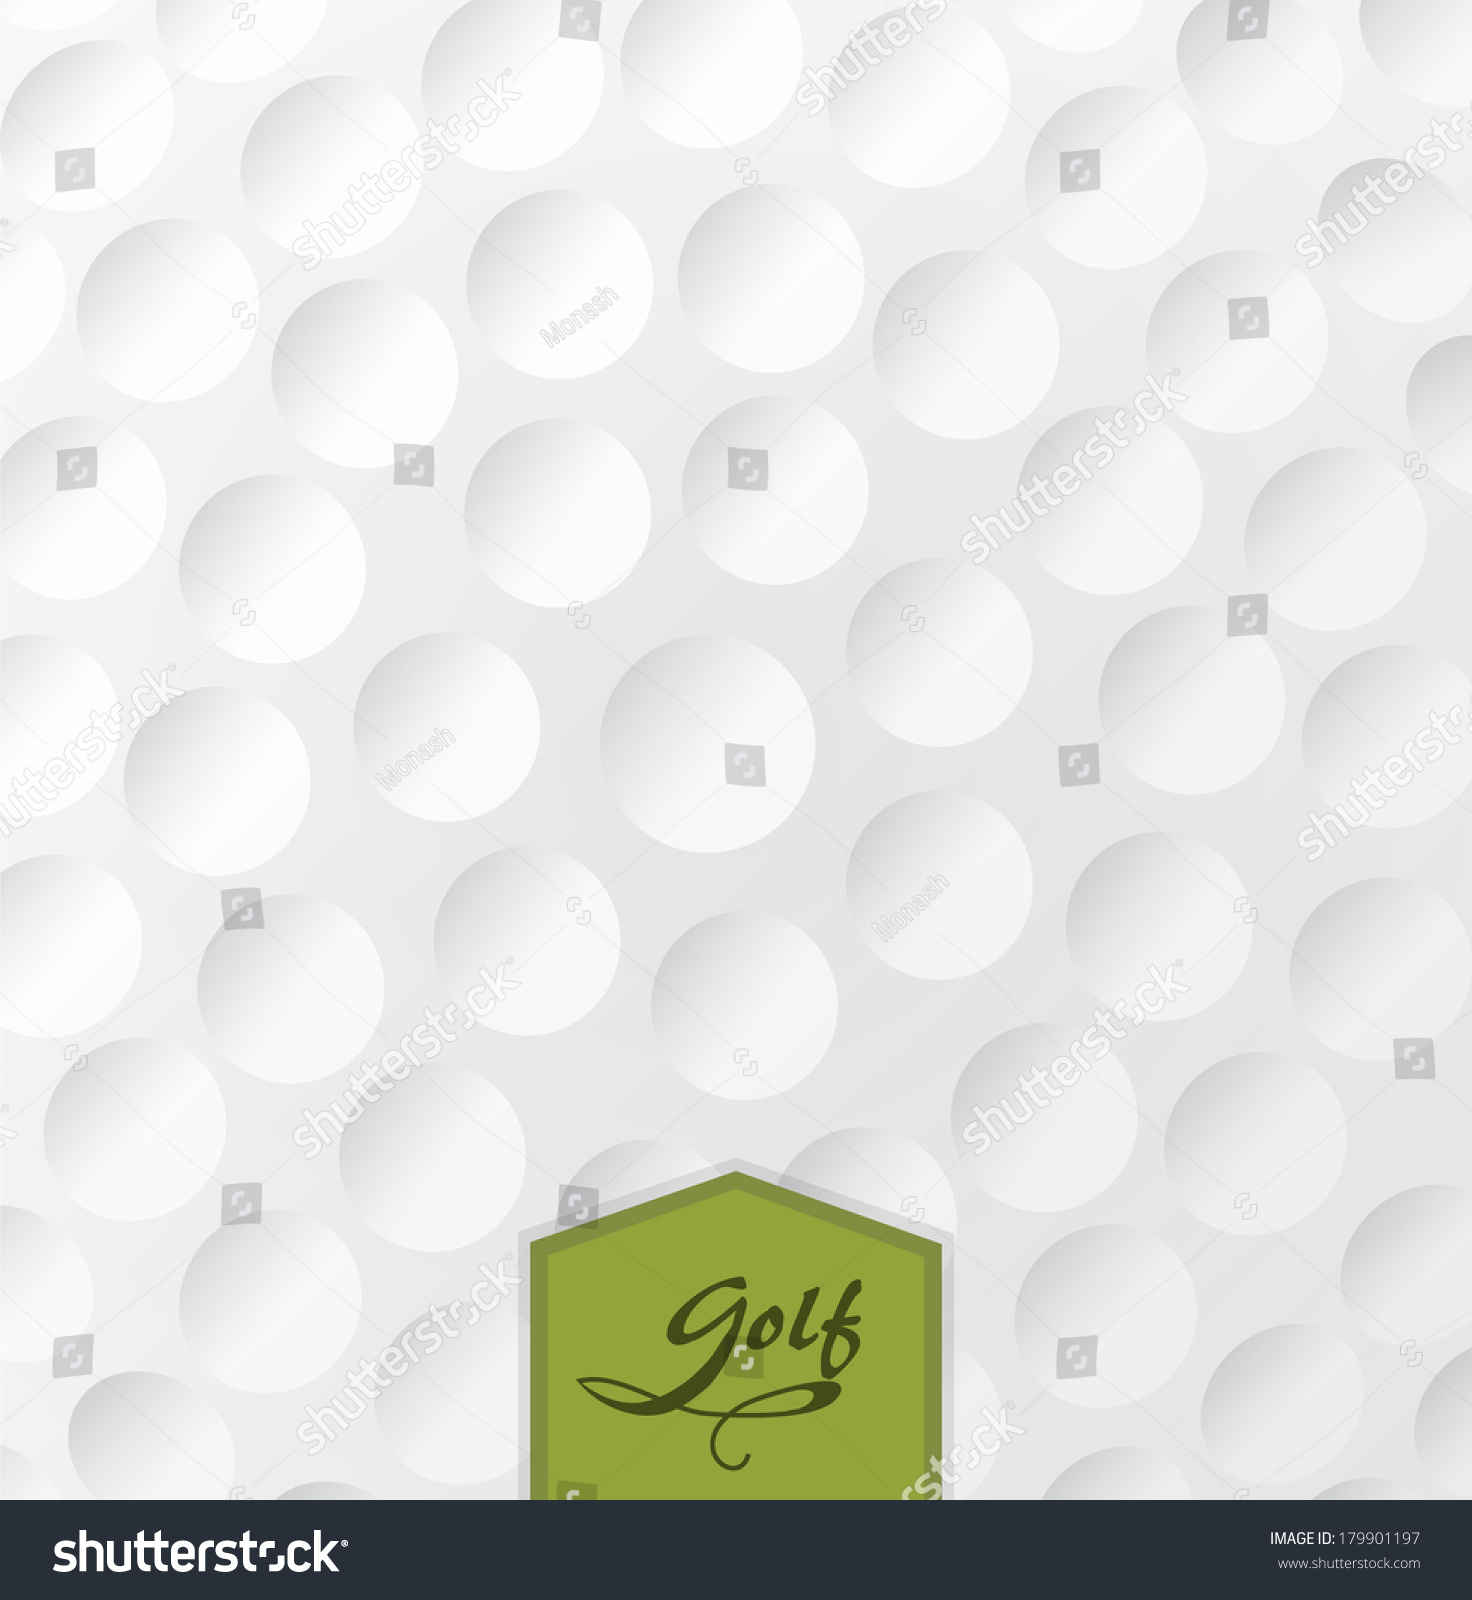 golf backgrounds realistic rendition golf ball stock vector